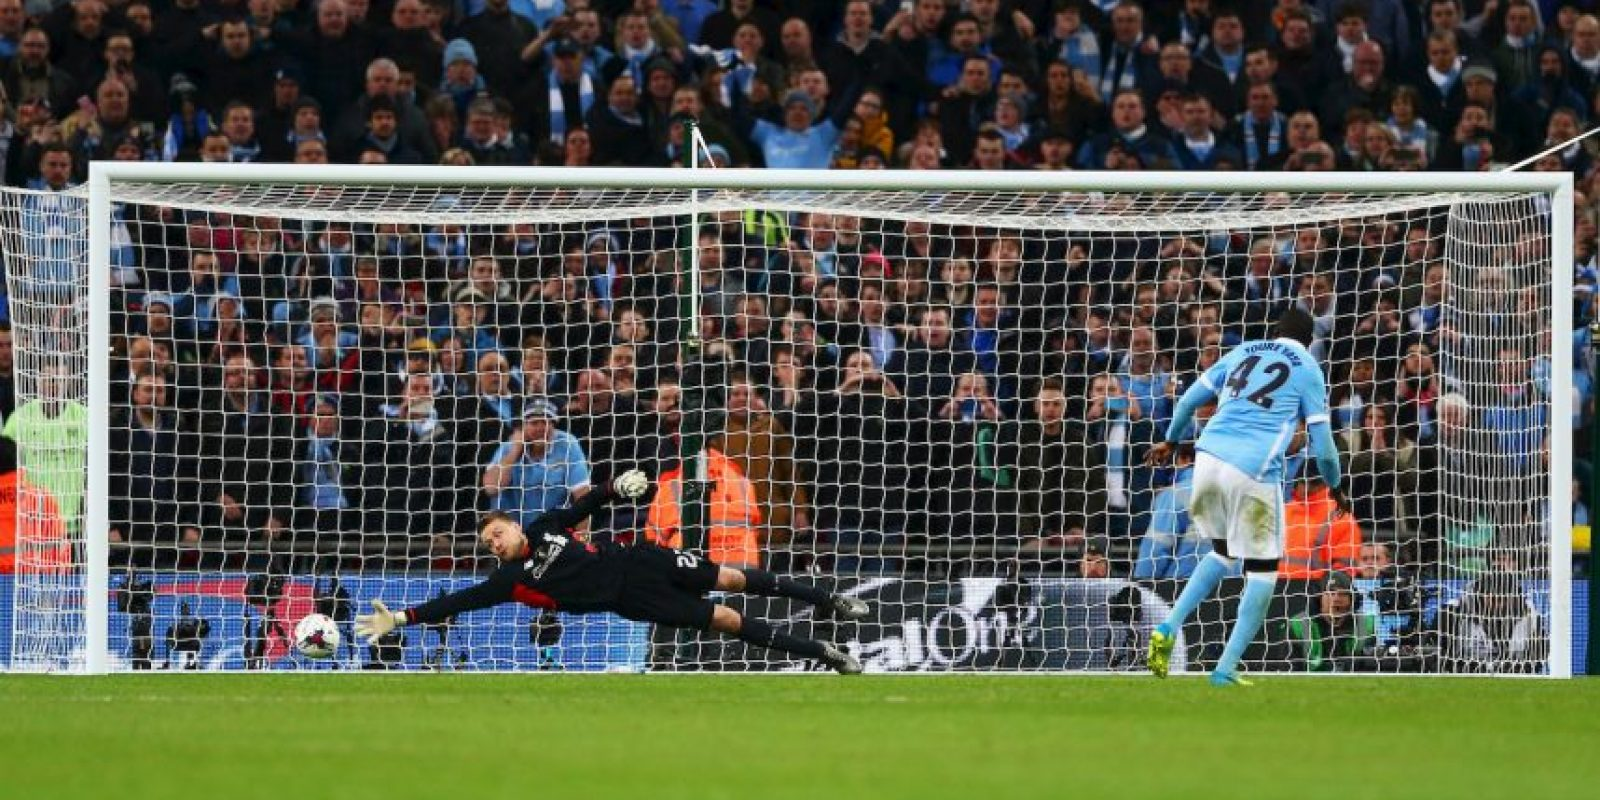 Yaya Touré anotó el penal del triunfo Foto: Getty Images